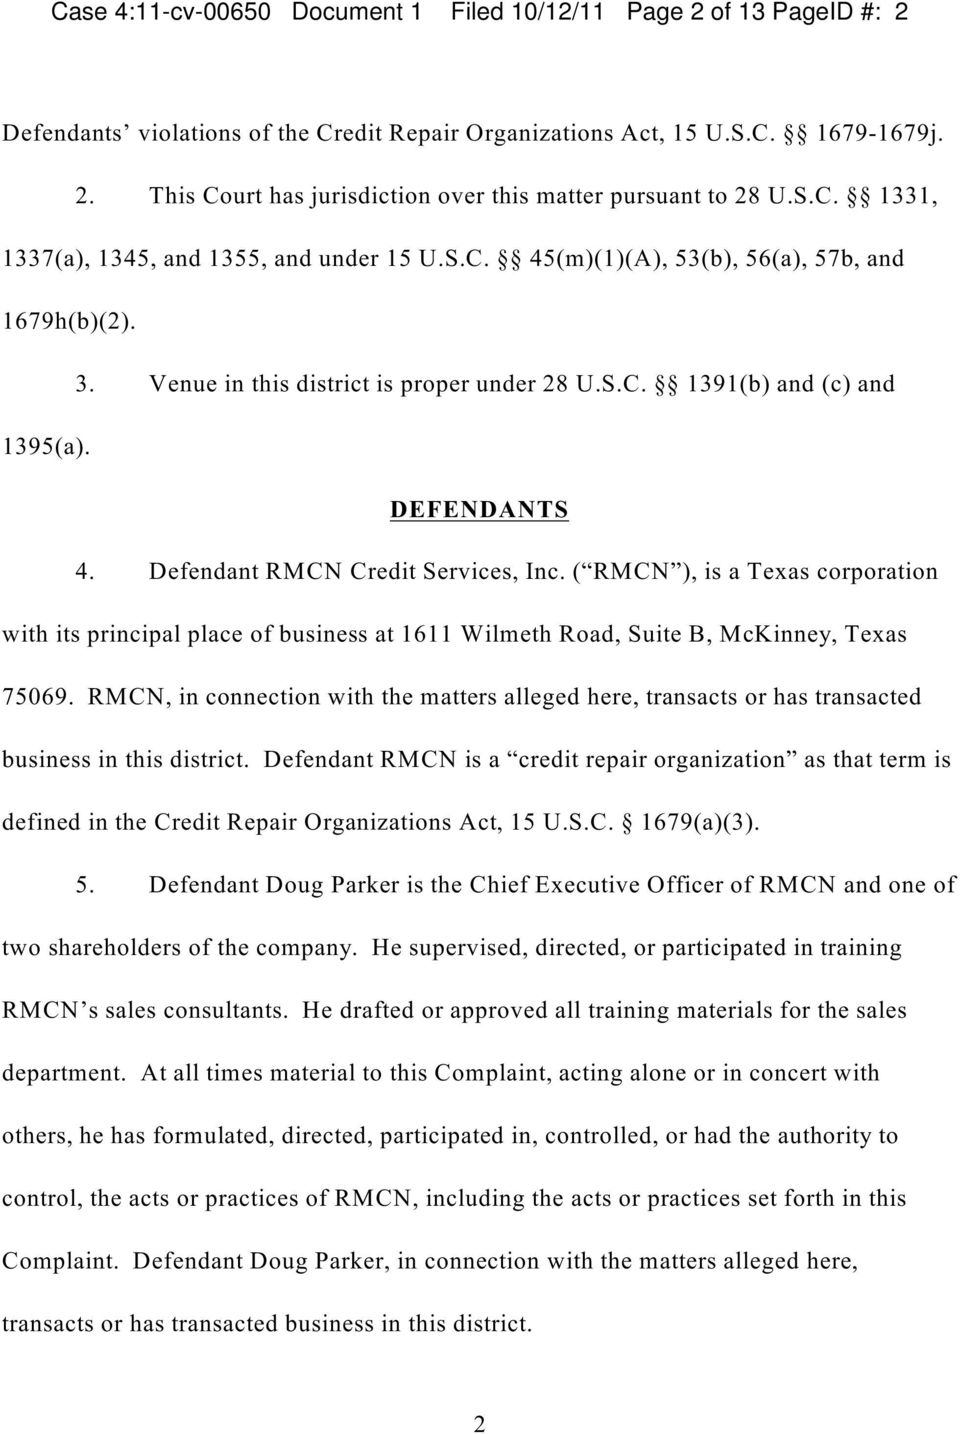 Defendant RMCN Credit Services, Inc. ( RMCN, is a Texas corporation with its principal place of business at 1611 Wilmeth Road, Suite B, McKinney, Texas 75069.